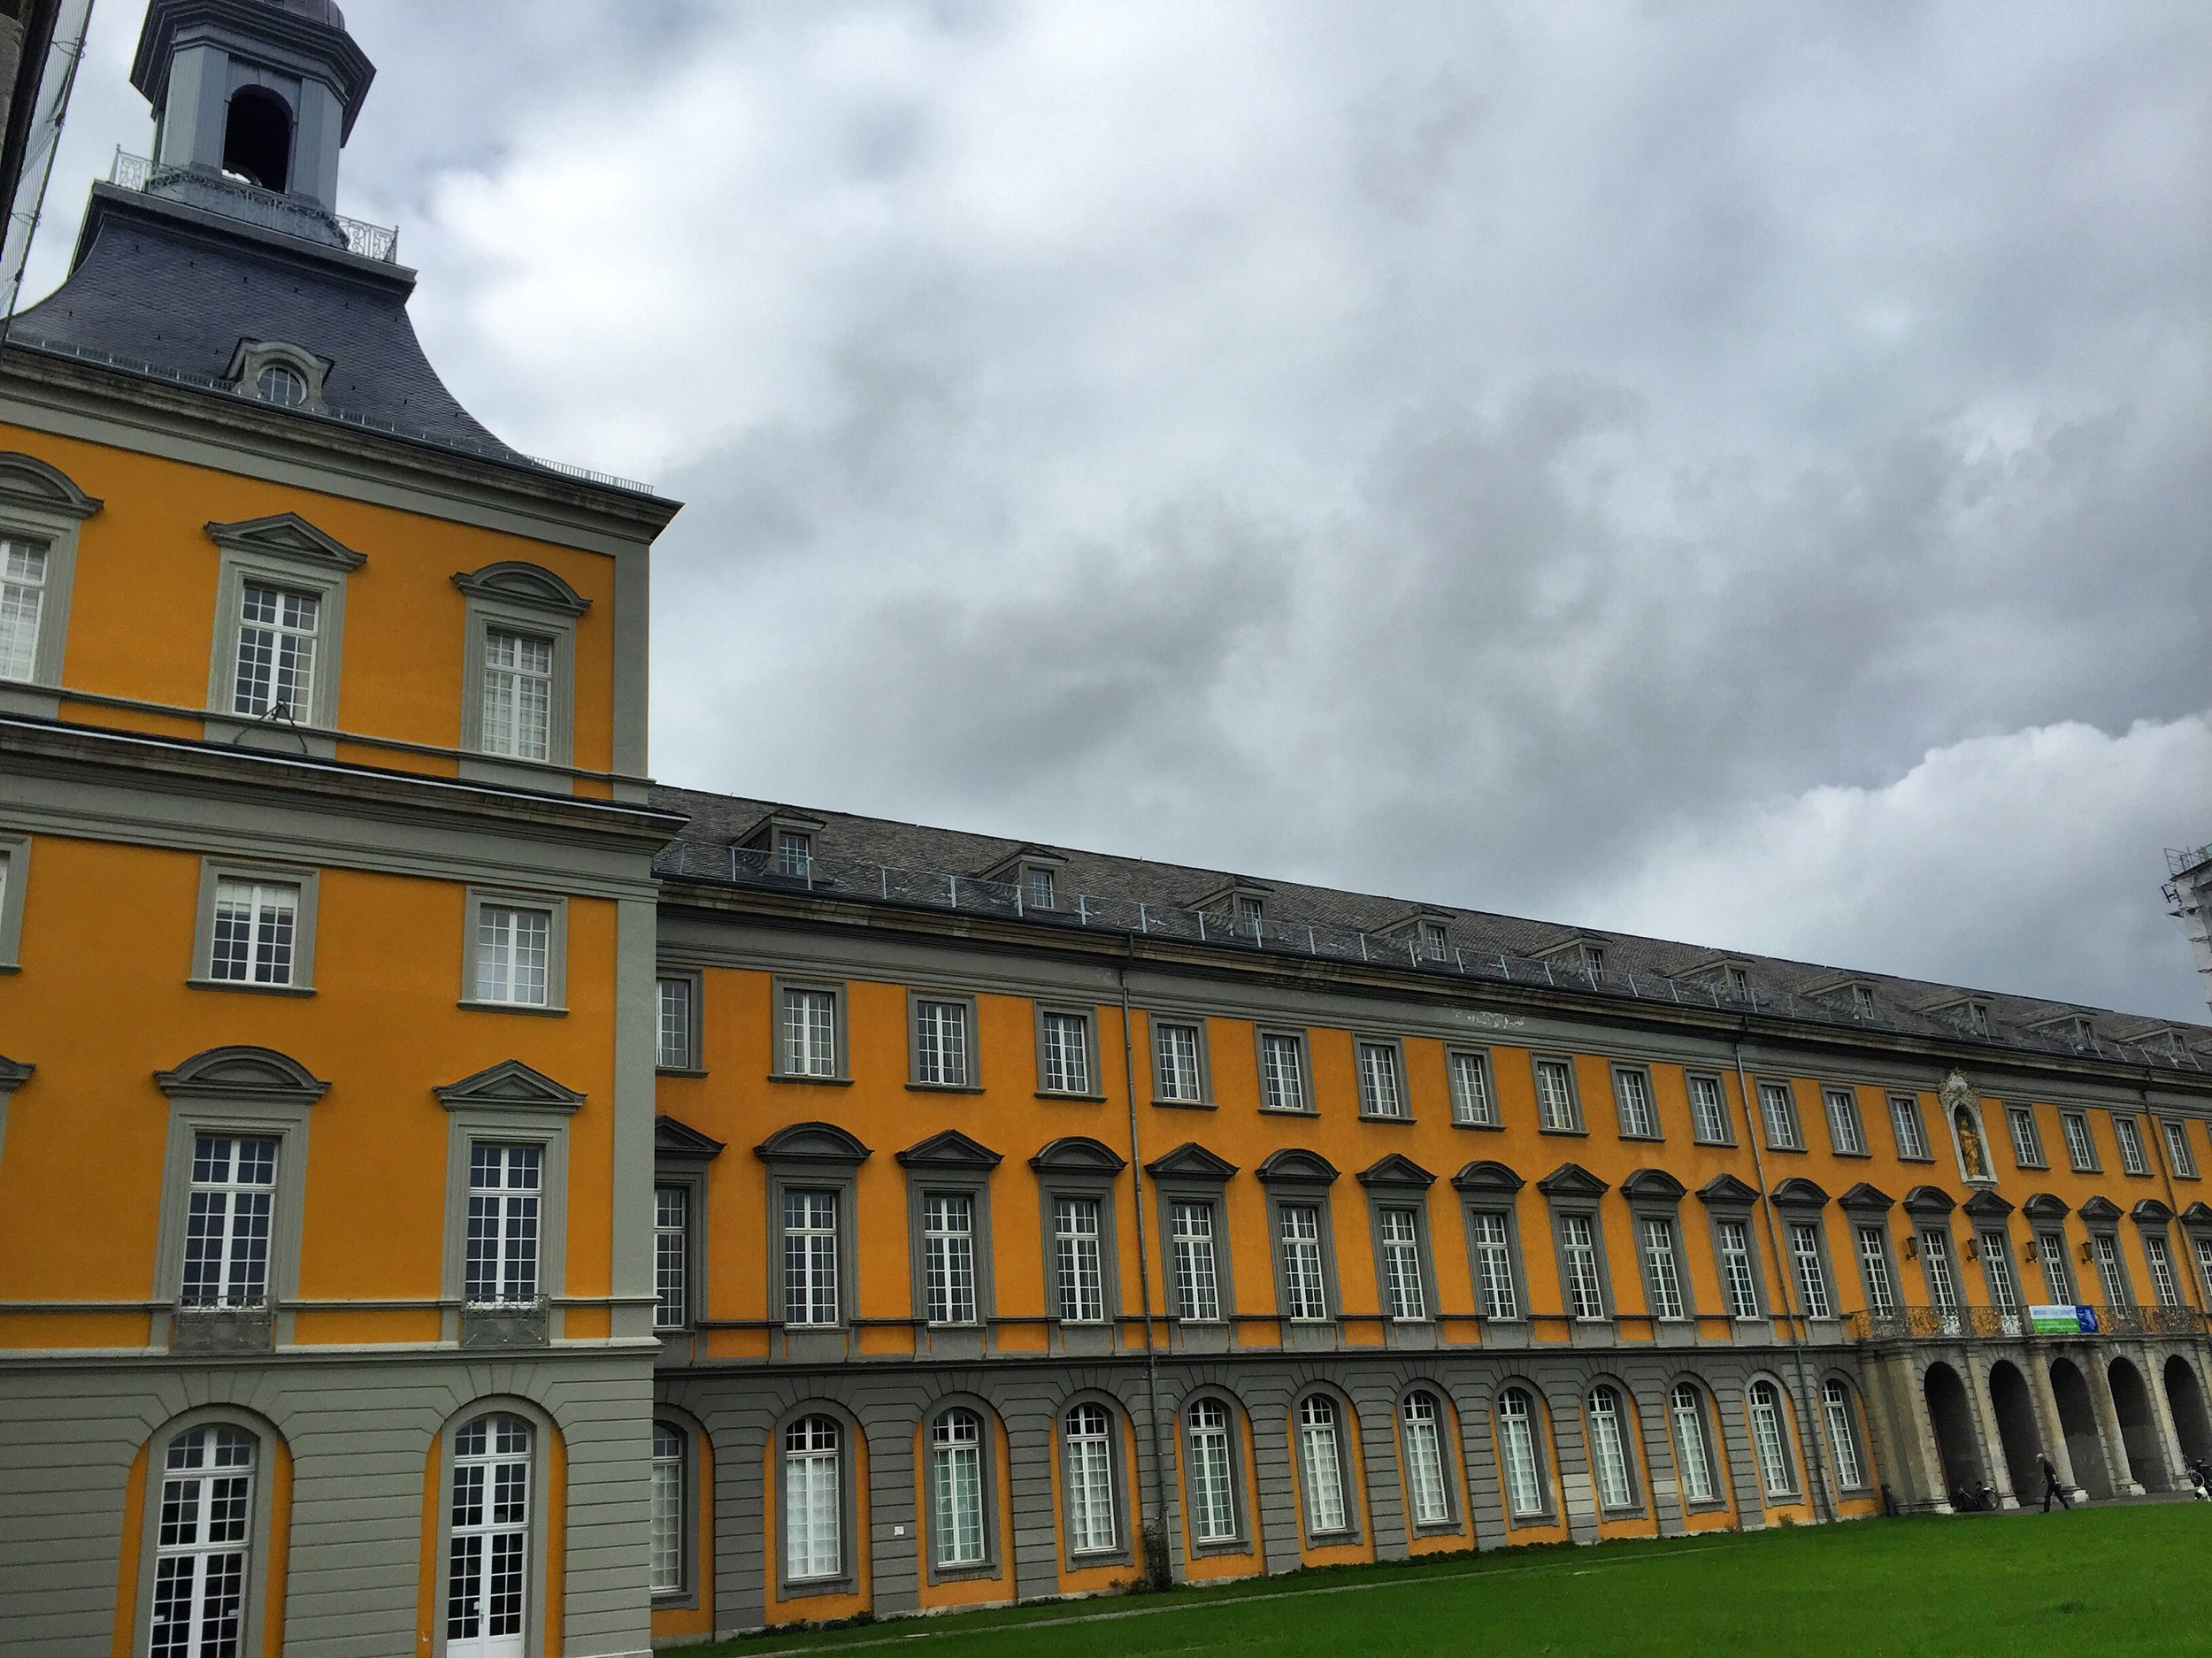 The main, historic building of Bonn University - former resident of the elector-prince. The full facade is even more impressive, but one wing was under restoration.